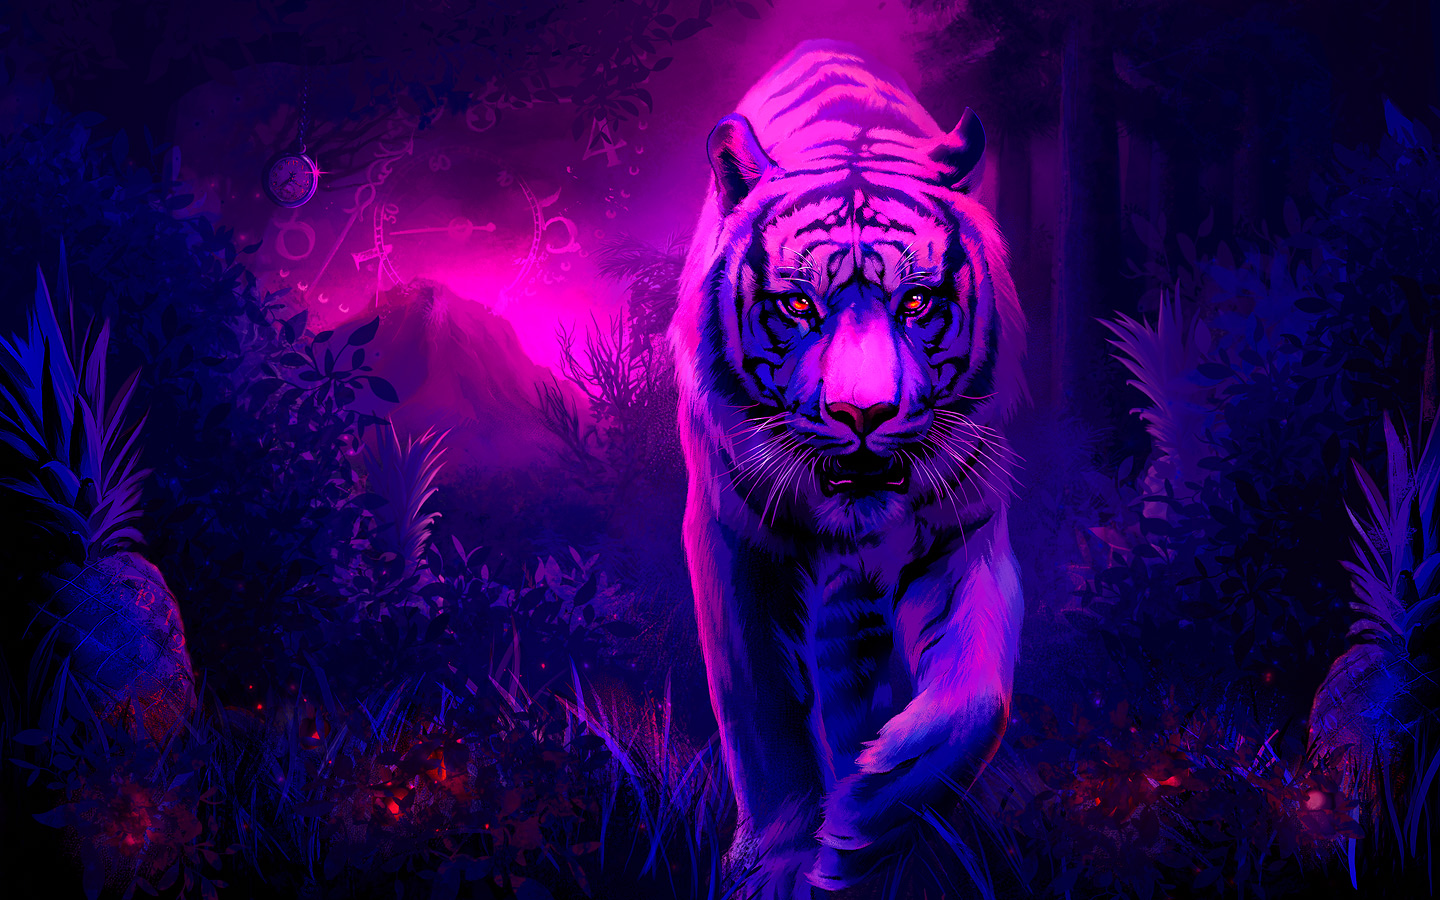 Tiger Wallpaper Purple - HD Desktop Wallpapers